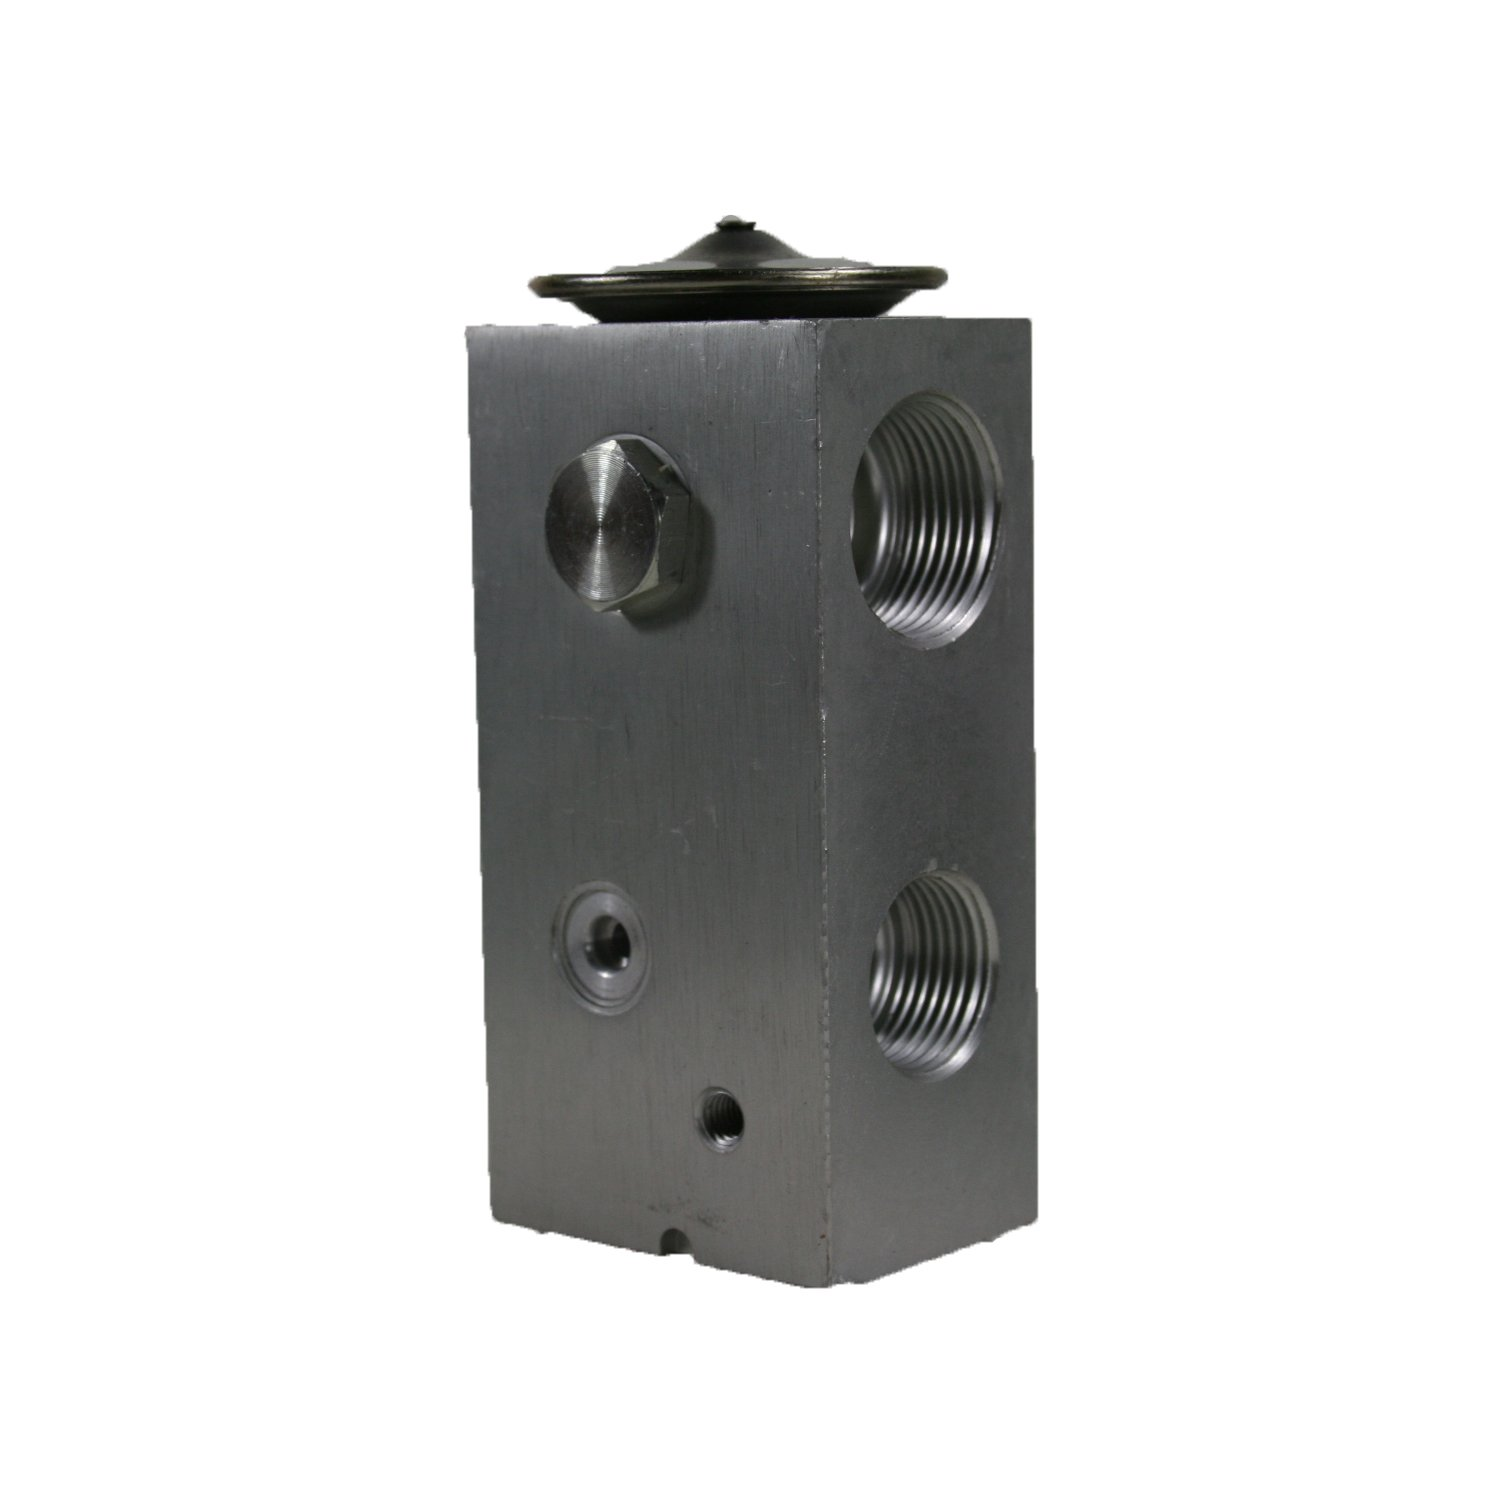 TCW Quality A//C Expansion Block 18-529459 with Perfect Vehicle Fitment